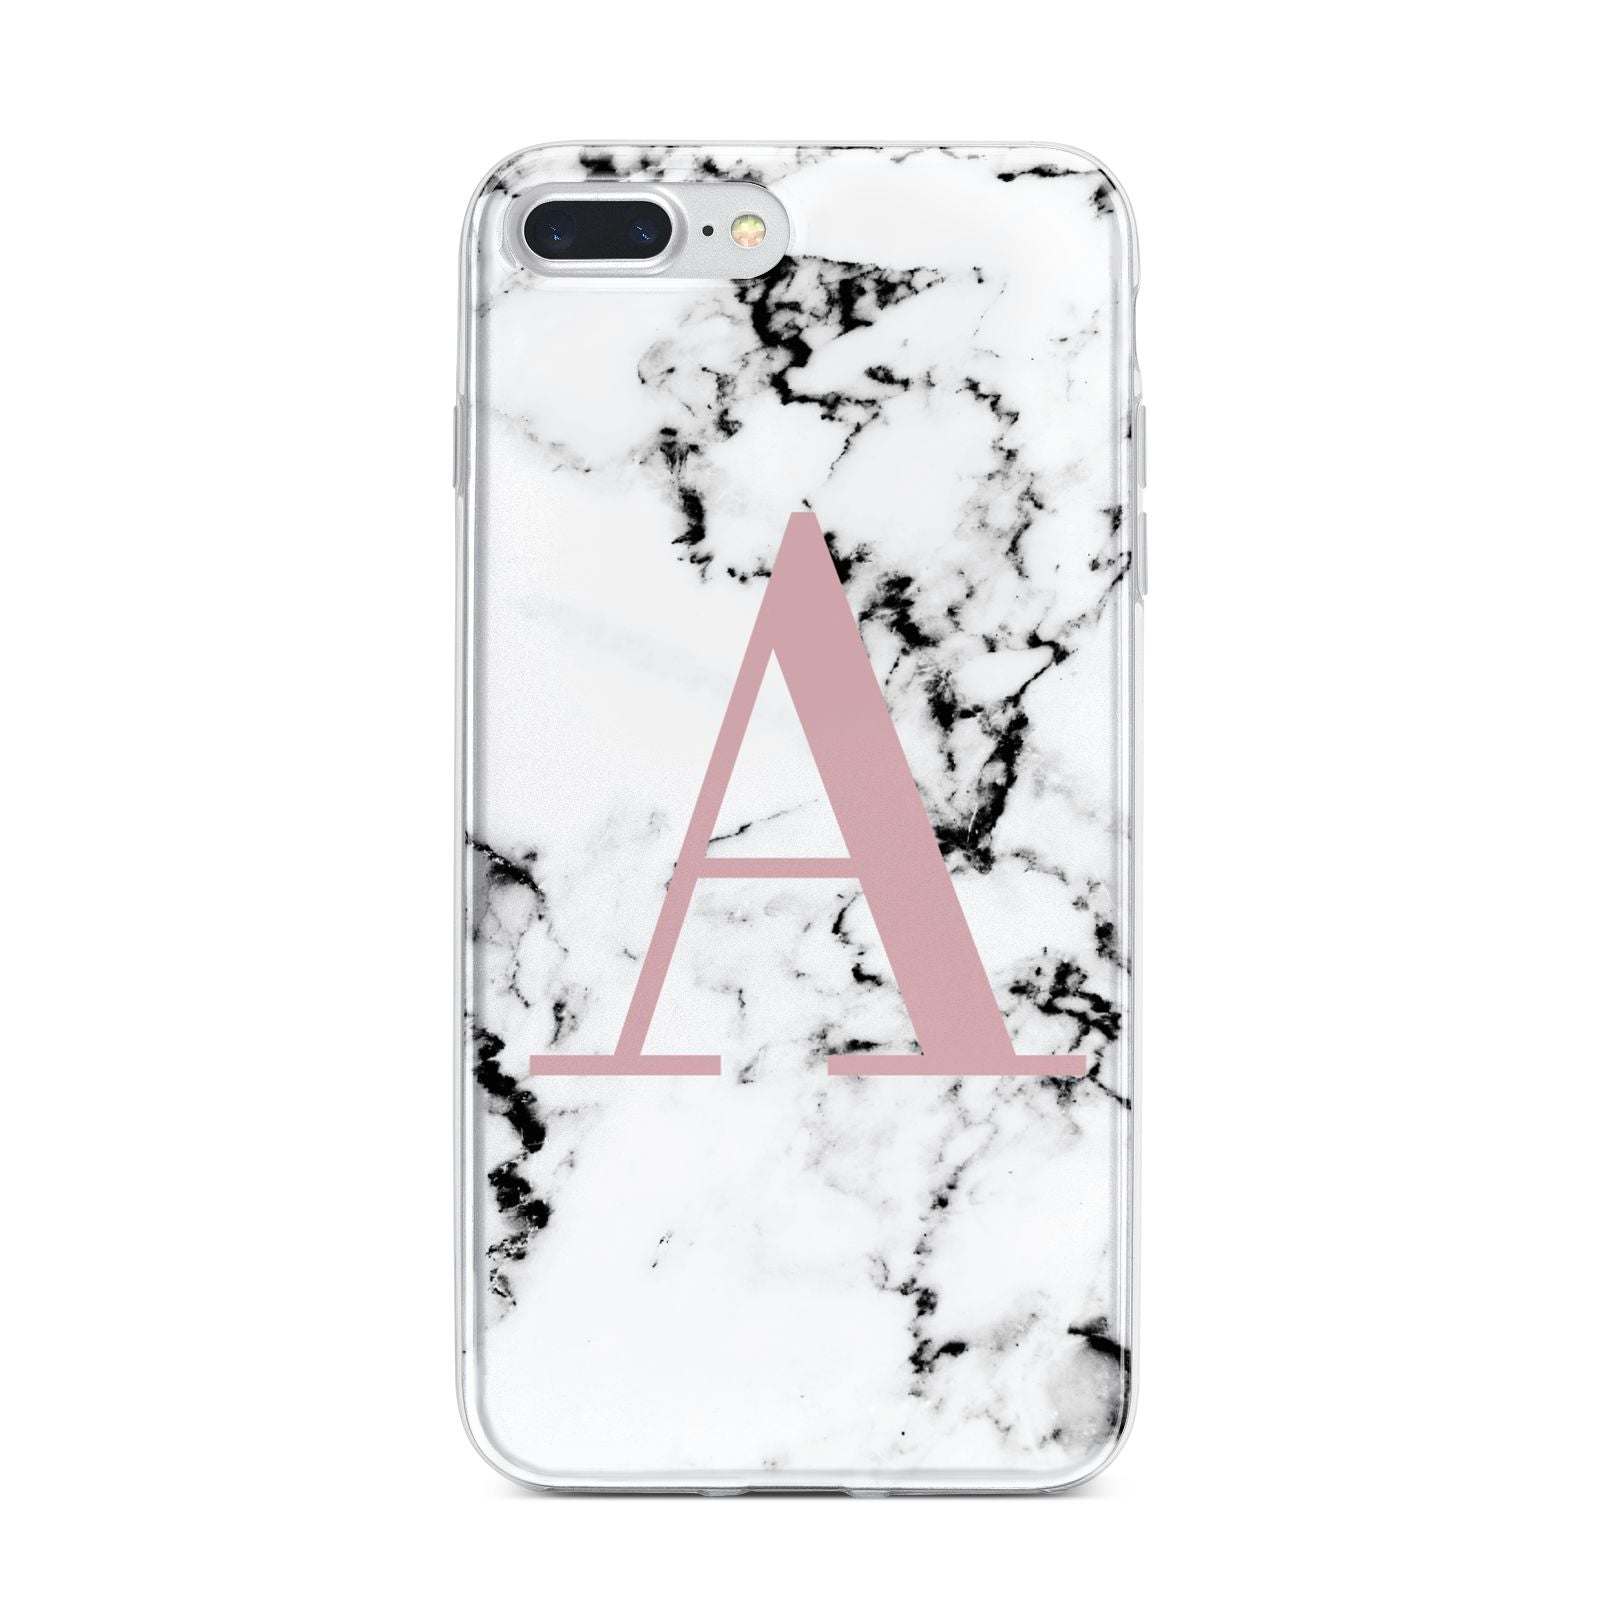 Marble Effect Pink Initial Personalised iPhone 7 Plus Bumper Case on Silver iPhone